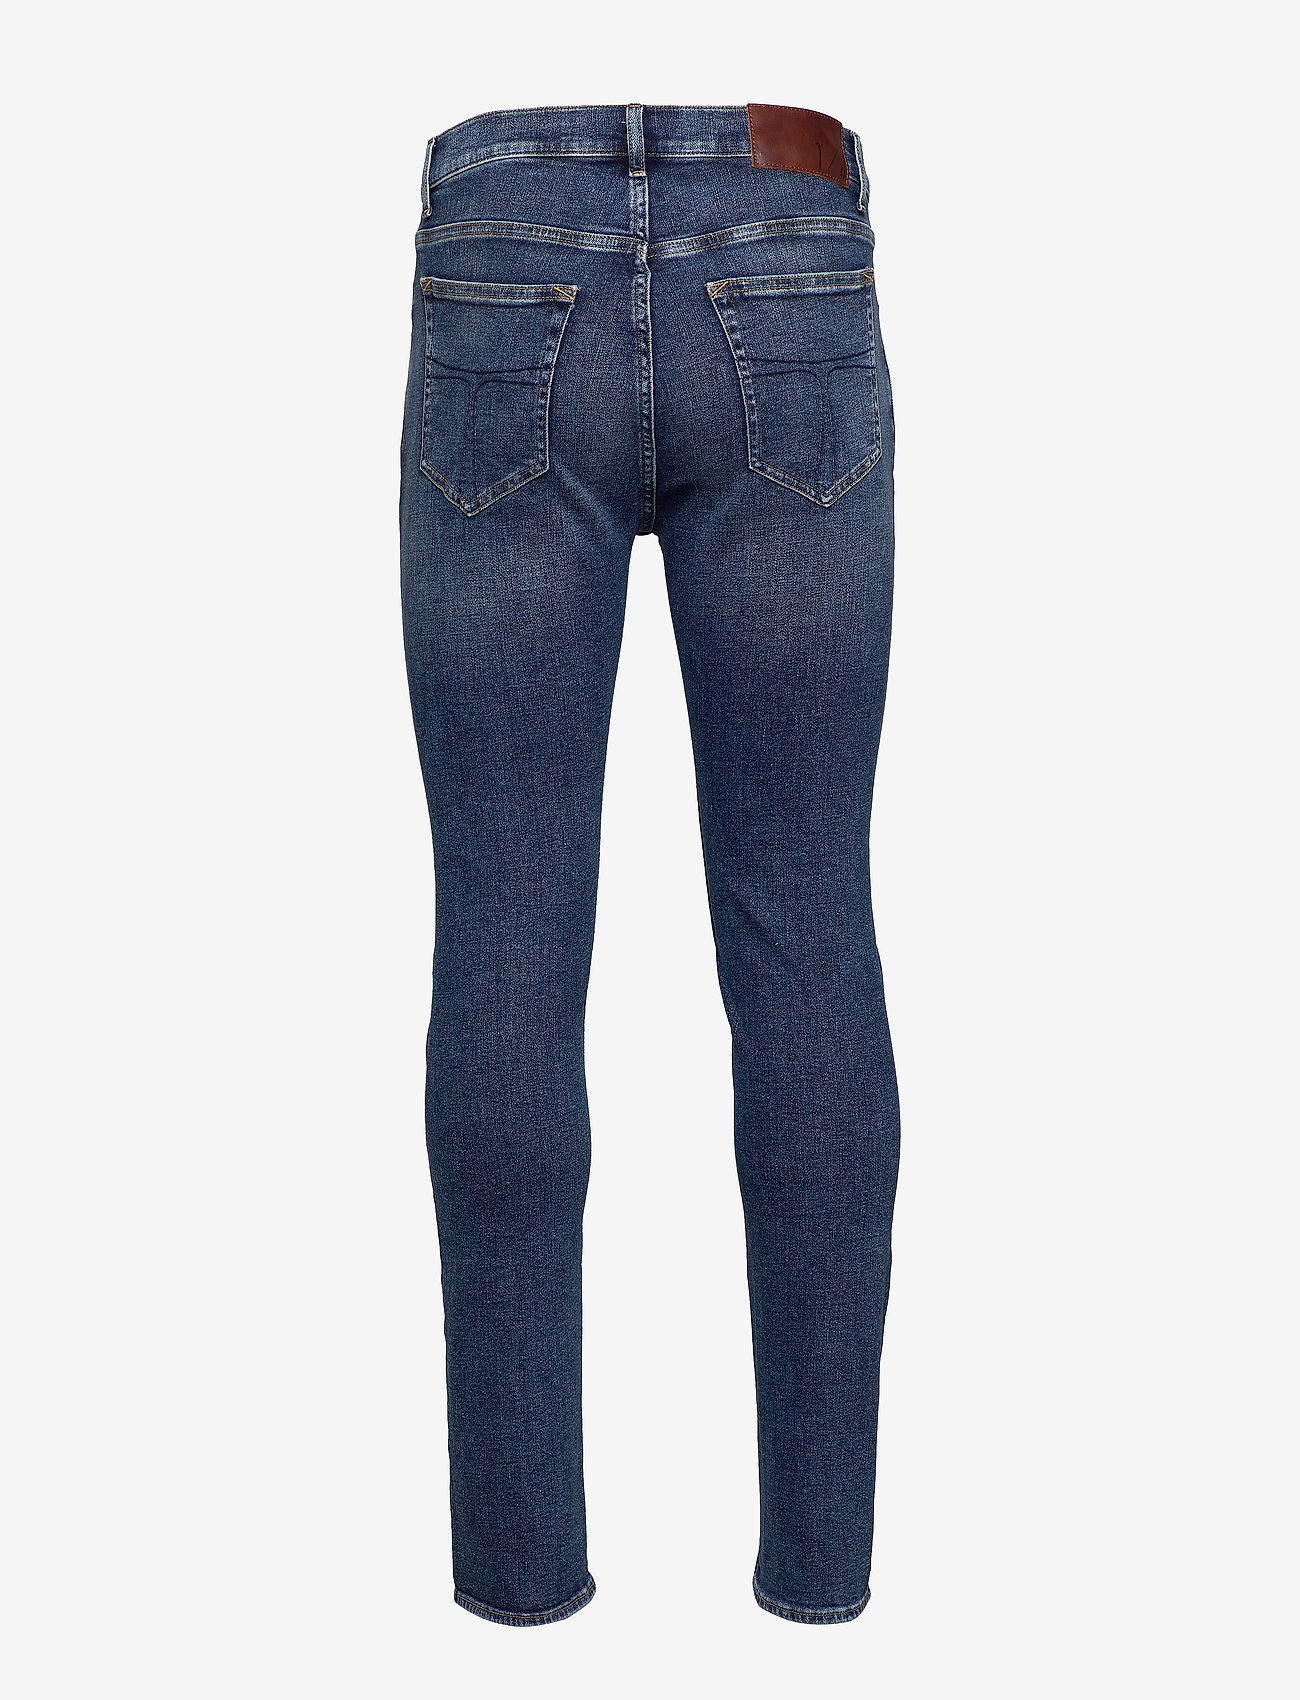 Leon (Royal Blue) - Tiger of Sweden Jeans cSClEi